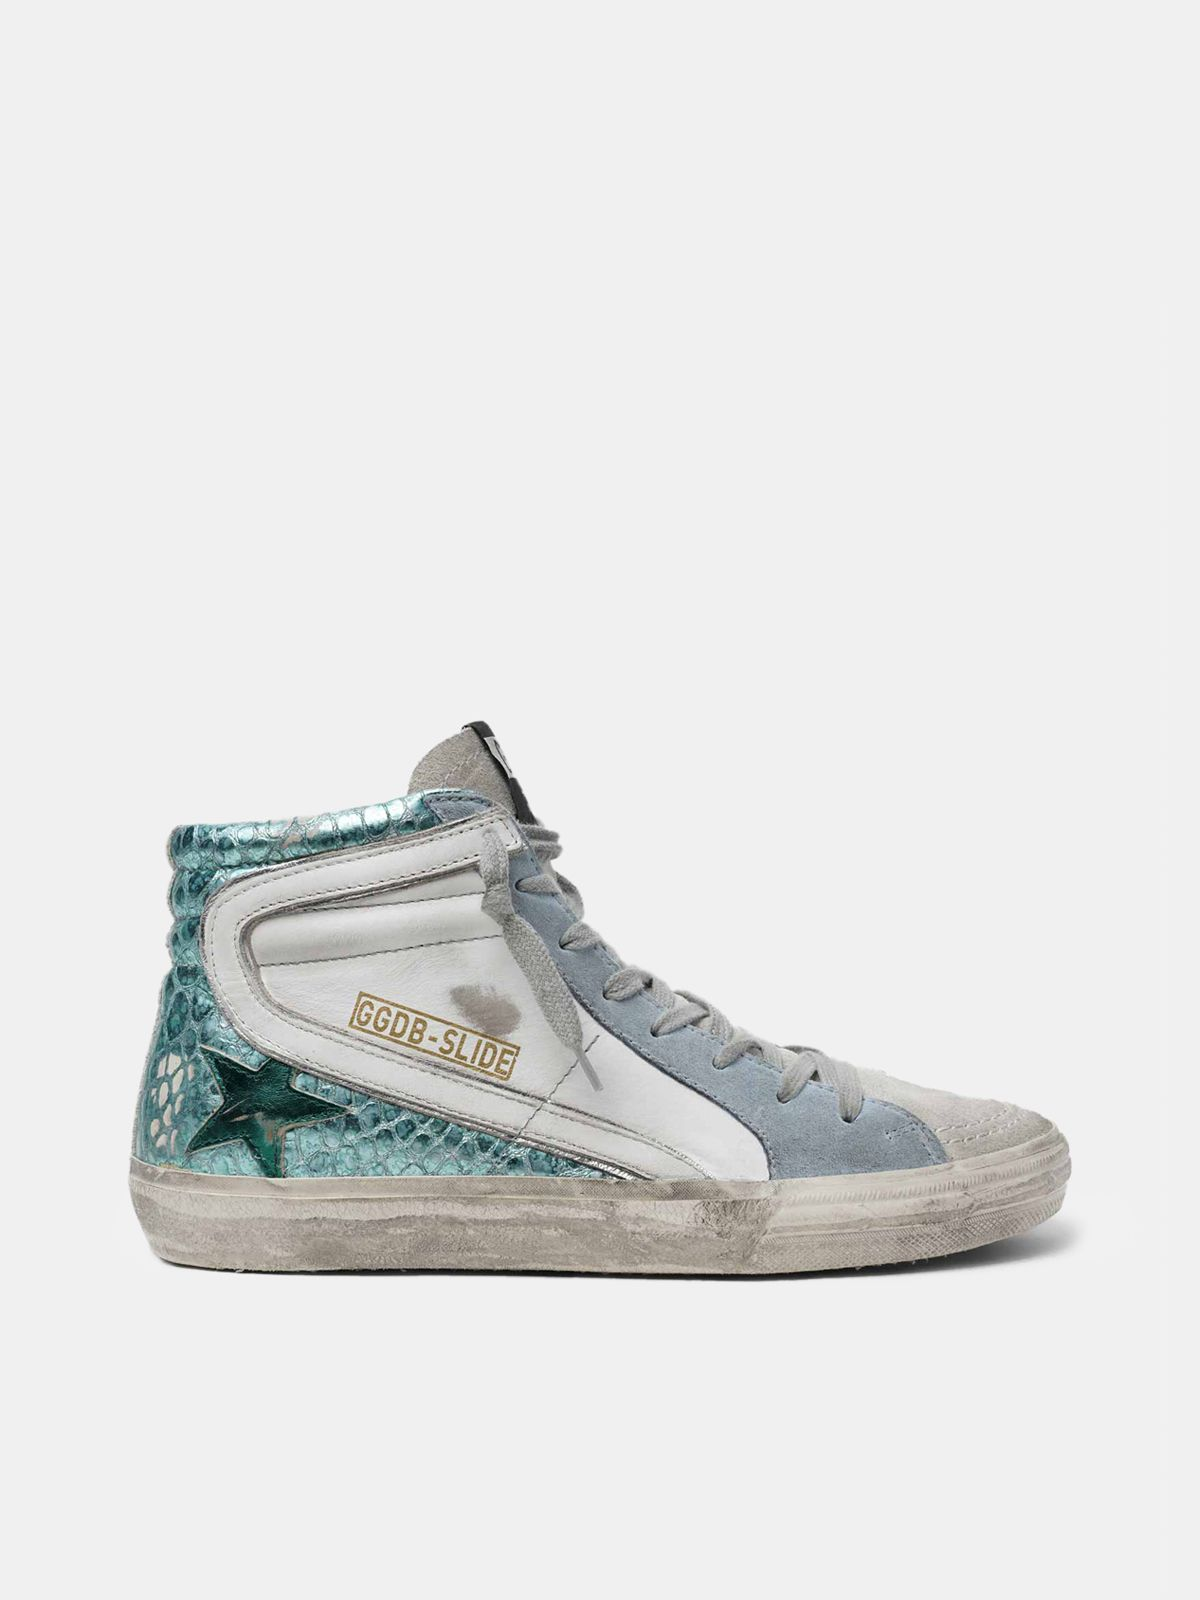 Golden Goose - Sneakers Slide in pelle verde laminata stampa cocco in